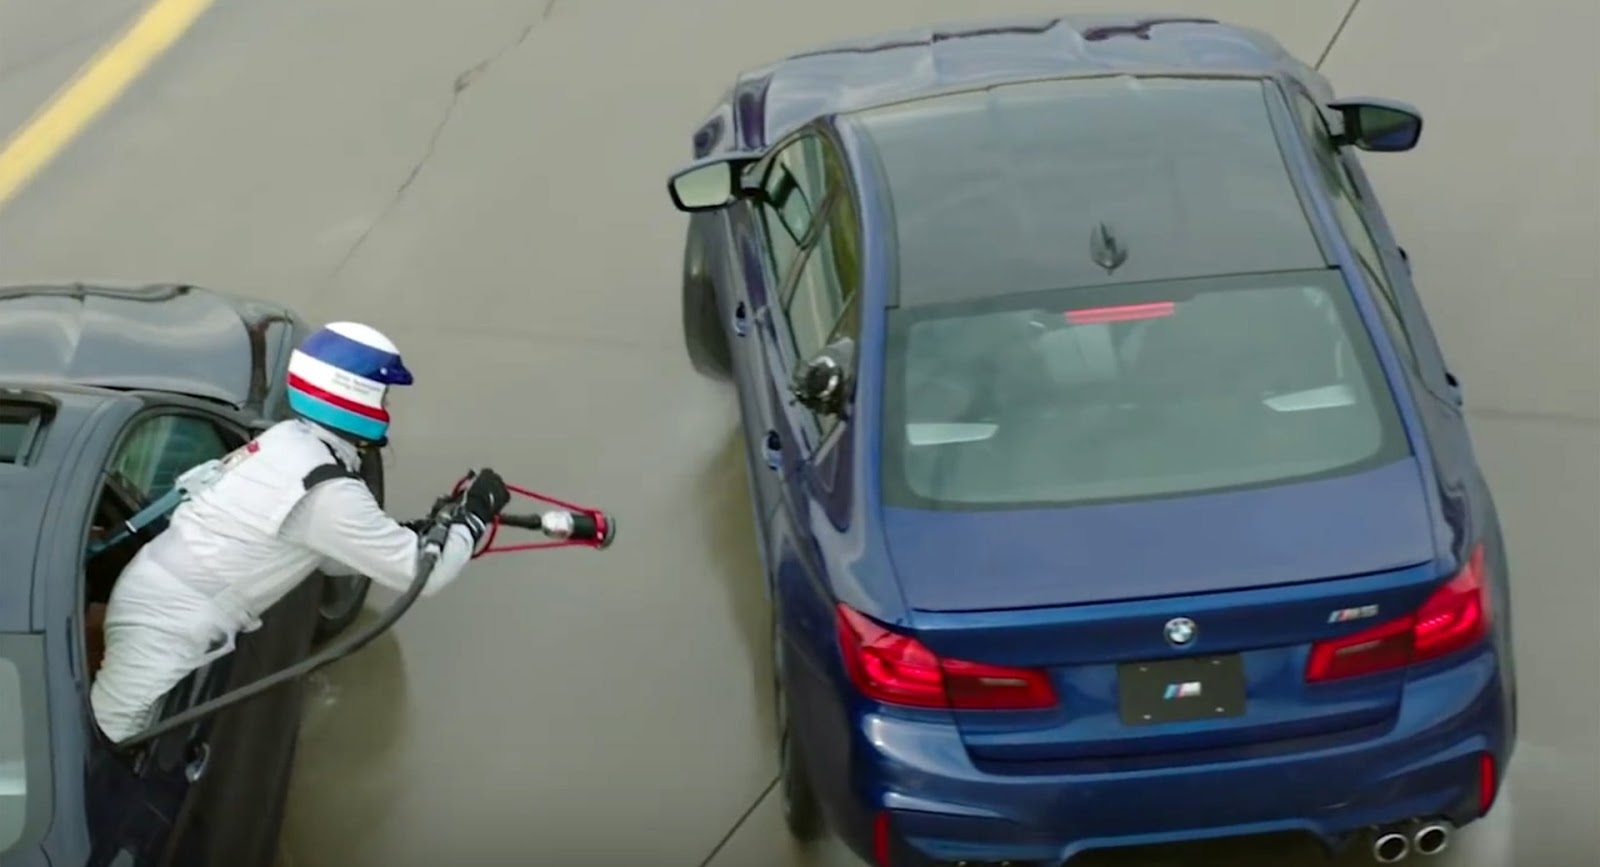 BMW Releases Nail-Biting Footage Of Its Mid-Drift Refuelling Efforts